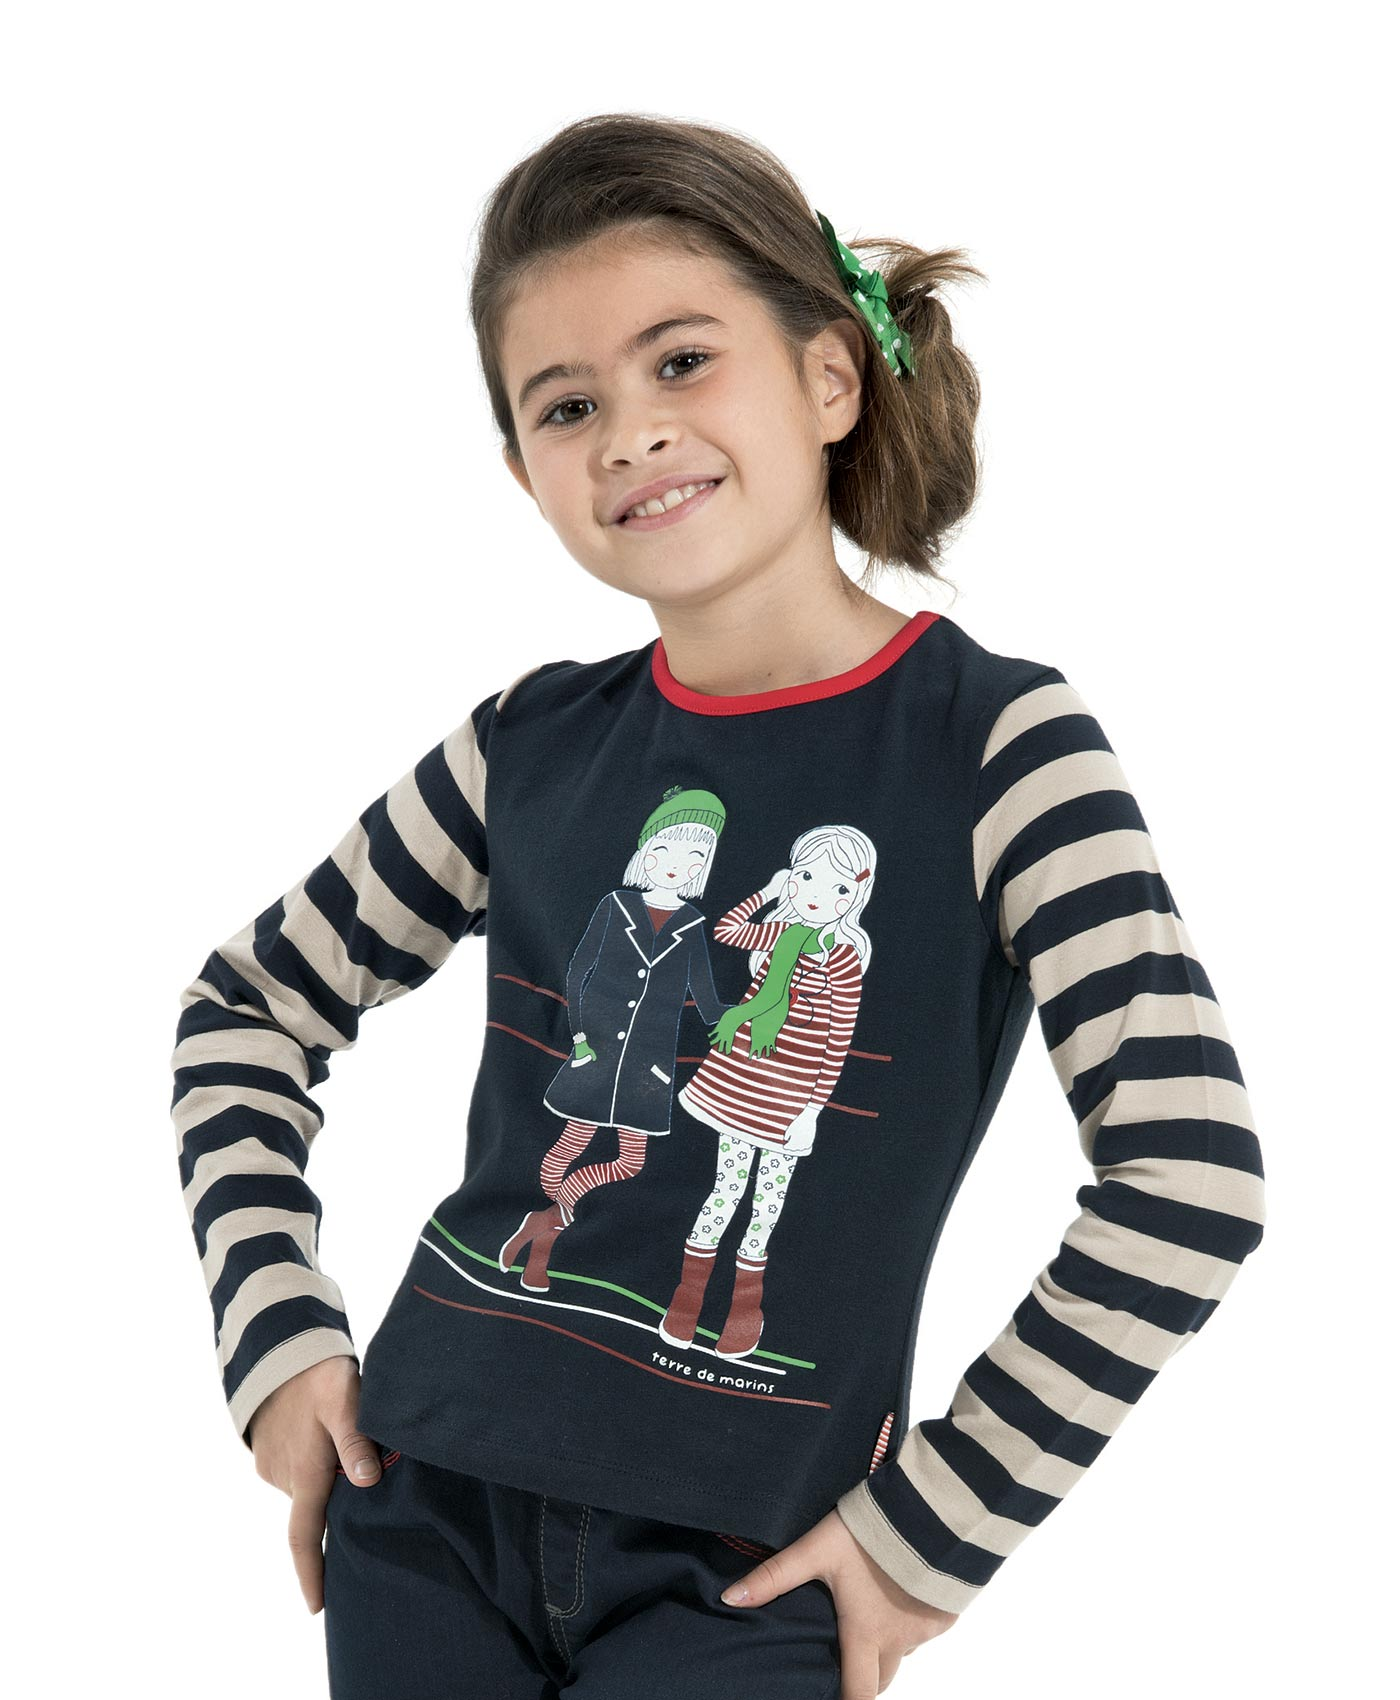 tee shirt manches longues fille marine t shirt polo top mode enfant fille terre de marins. Black Bedroom Furniture Sets. Home Design Ideas